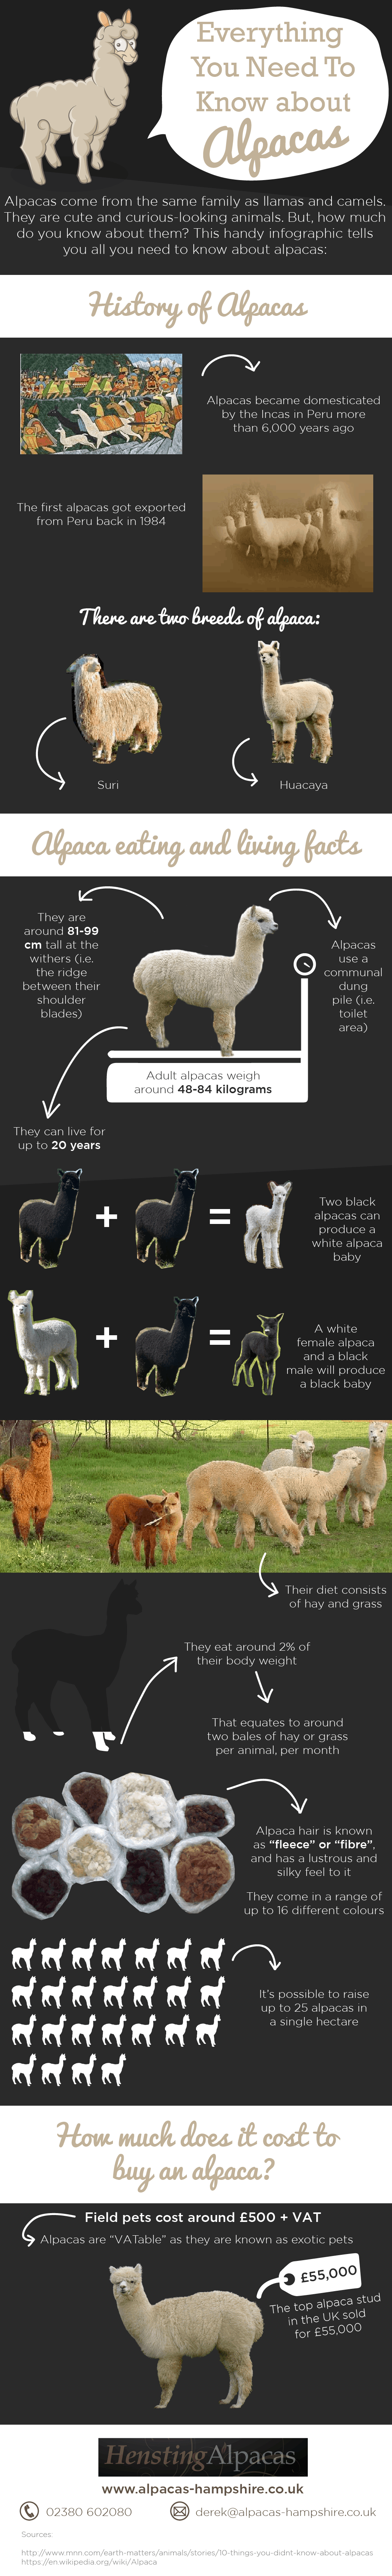 alpacagraphic1